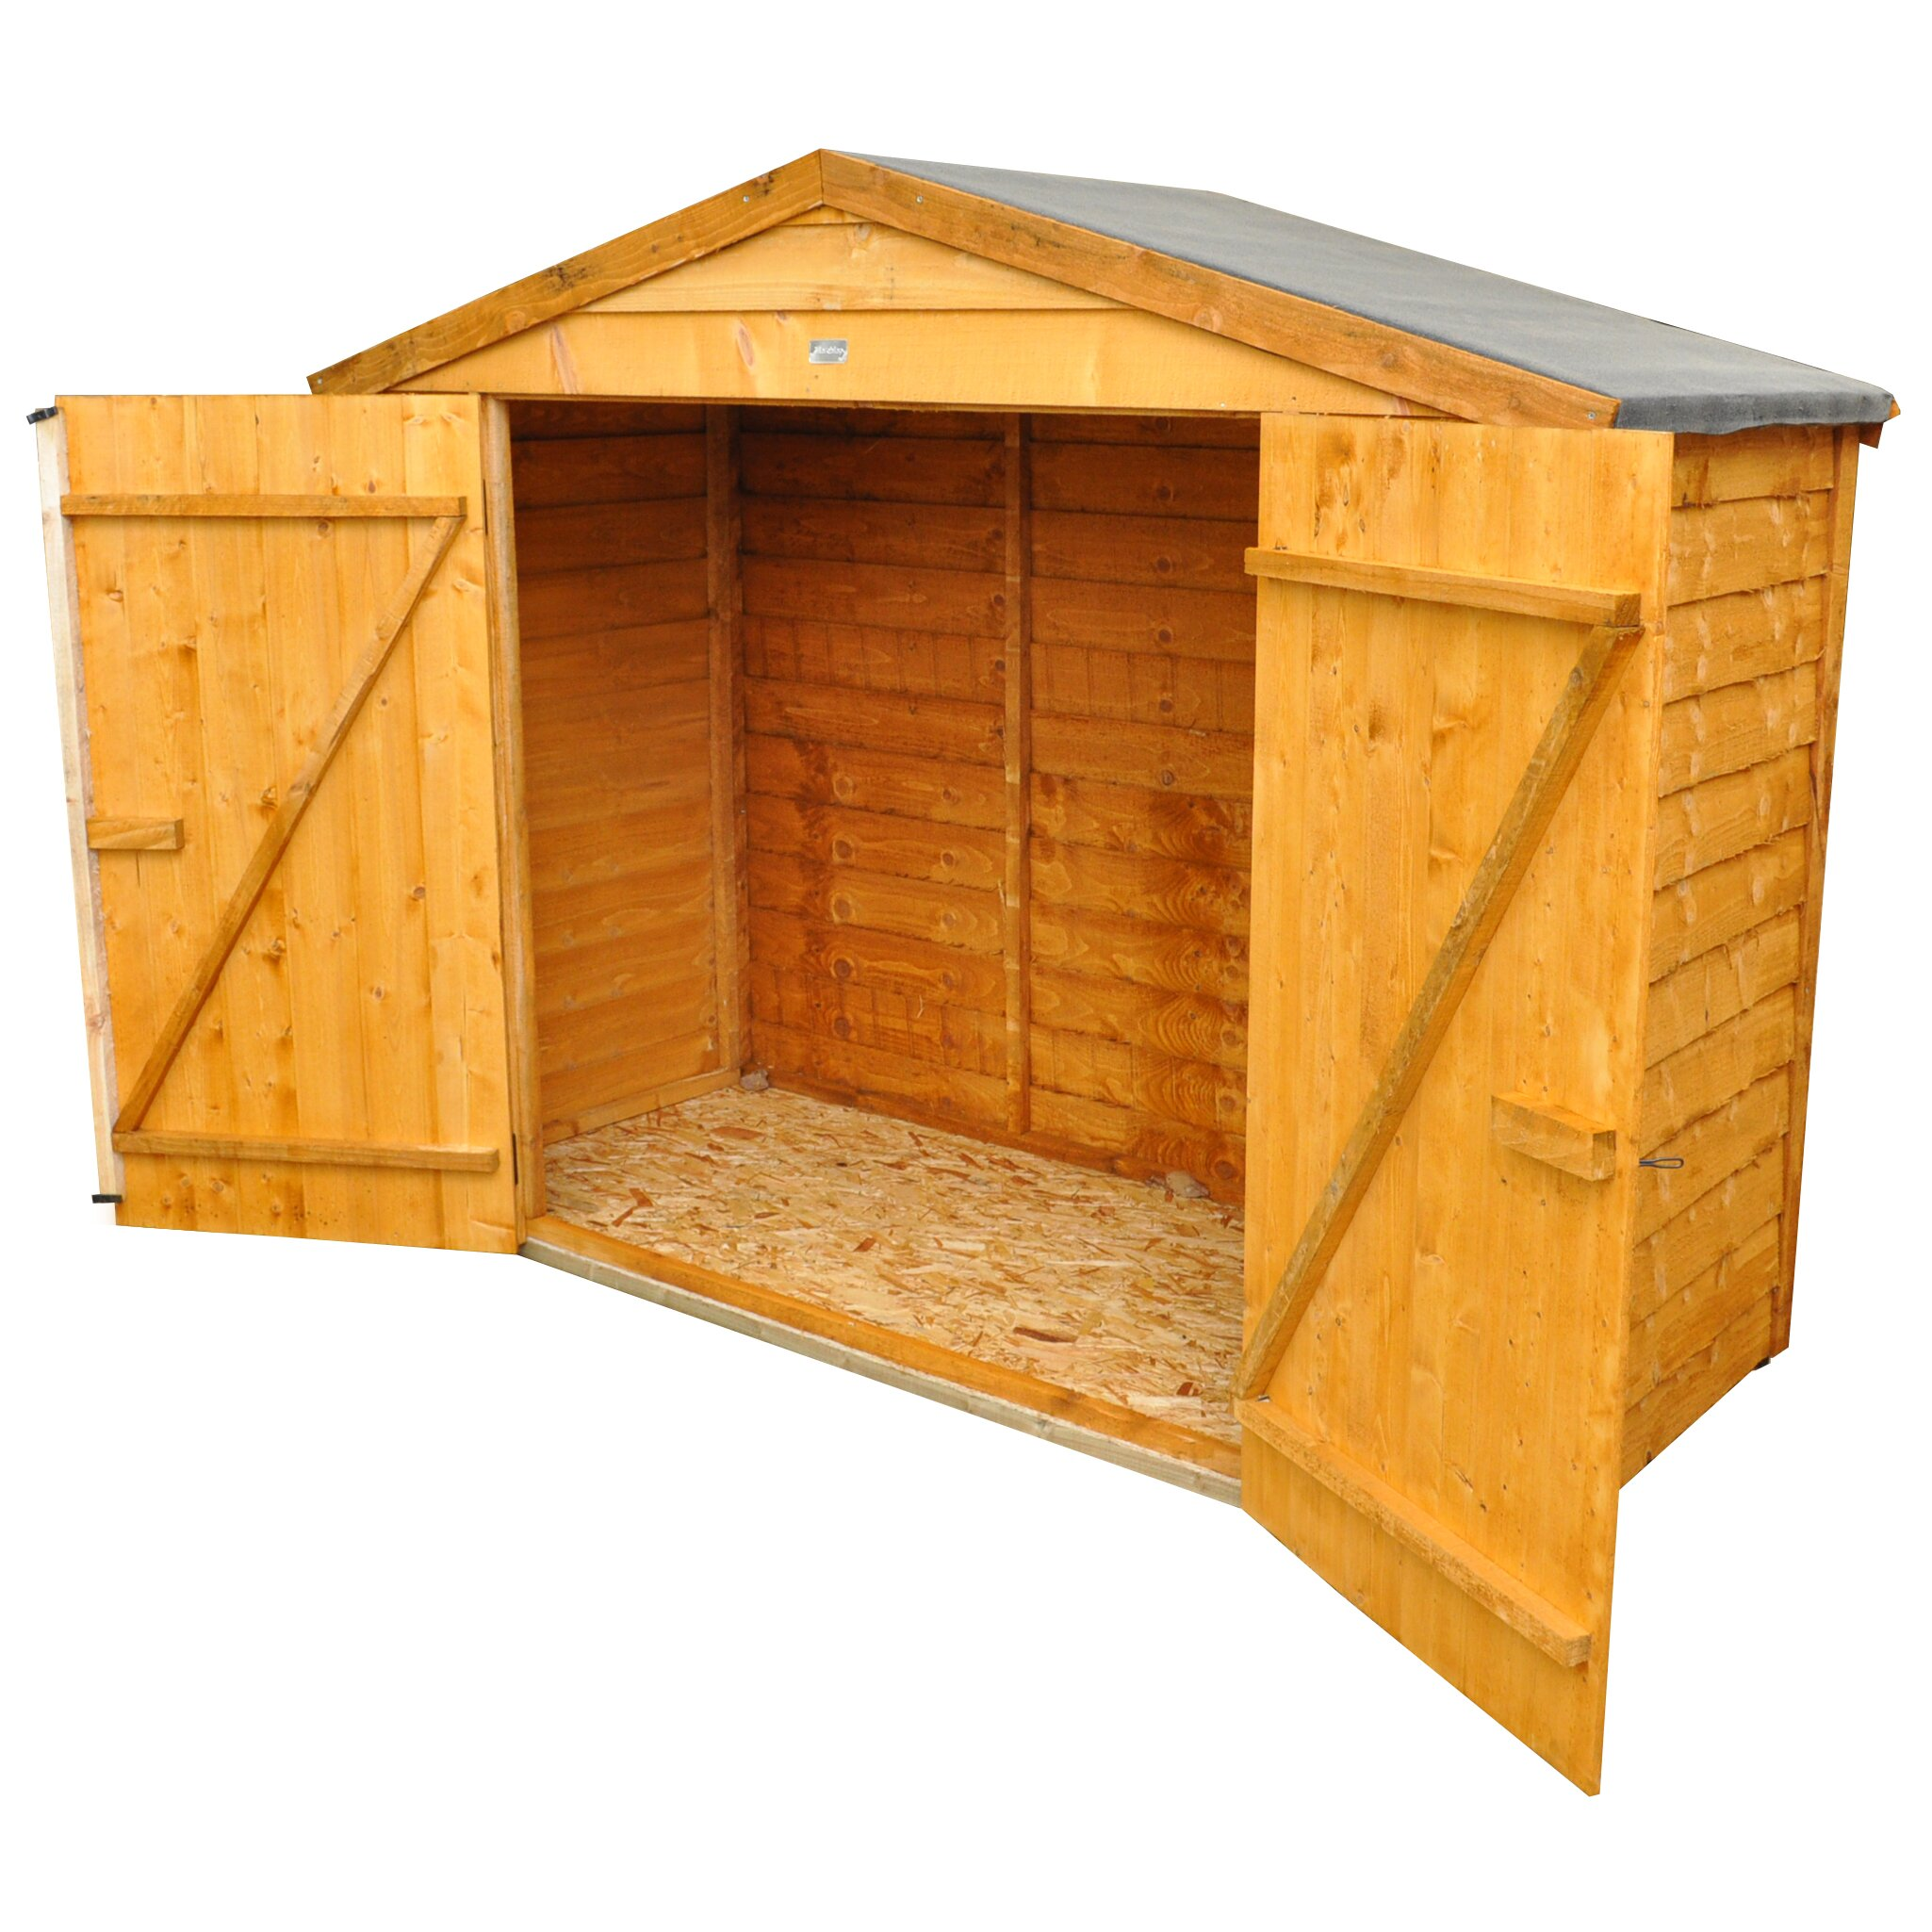 Forest garden 6 x 3 wooden bike shed reviews wayfair uk for Garden shed 7 x 3